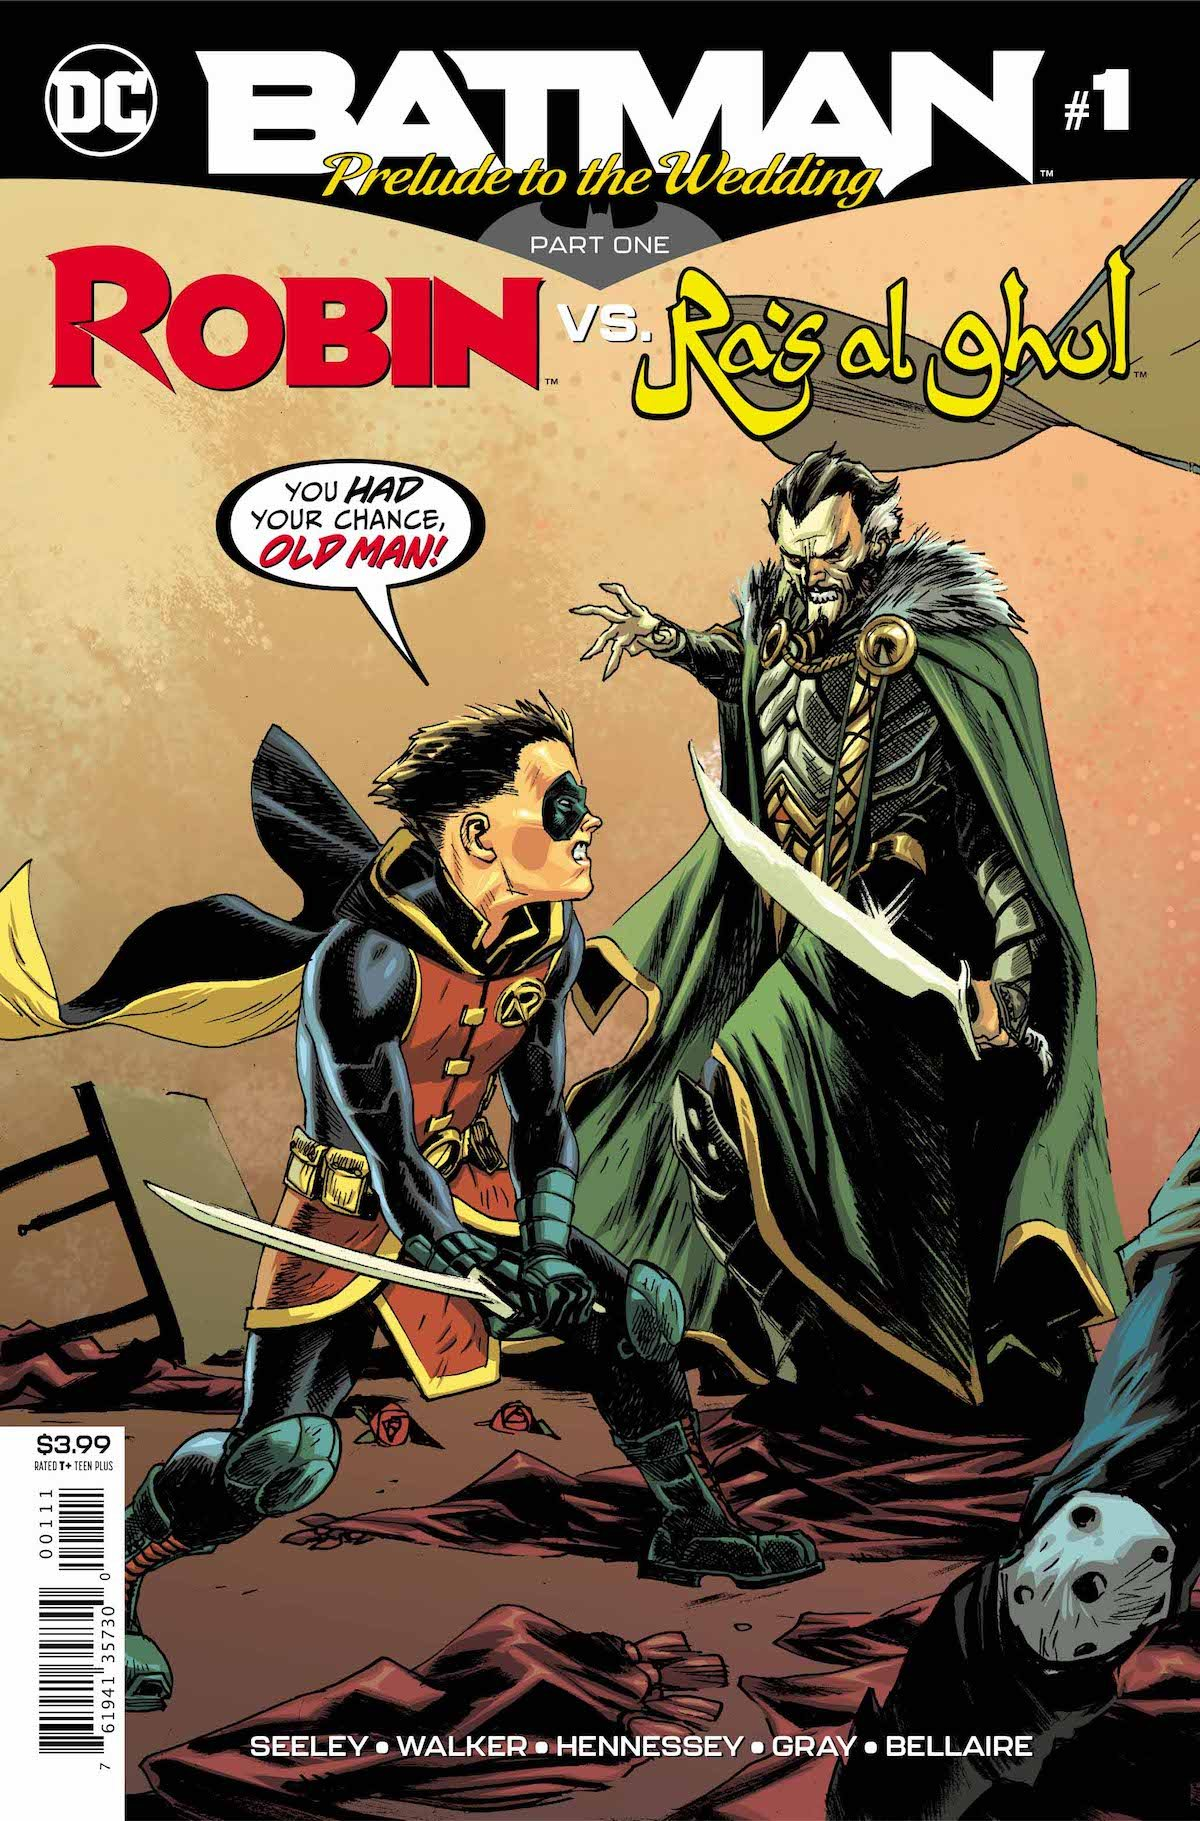 Batman Prelude to the Wedding Robin Ra's Al Ghul #1 cover